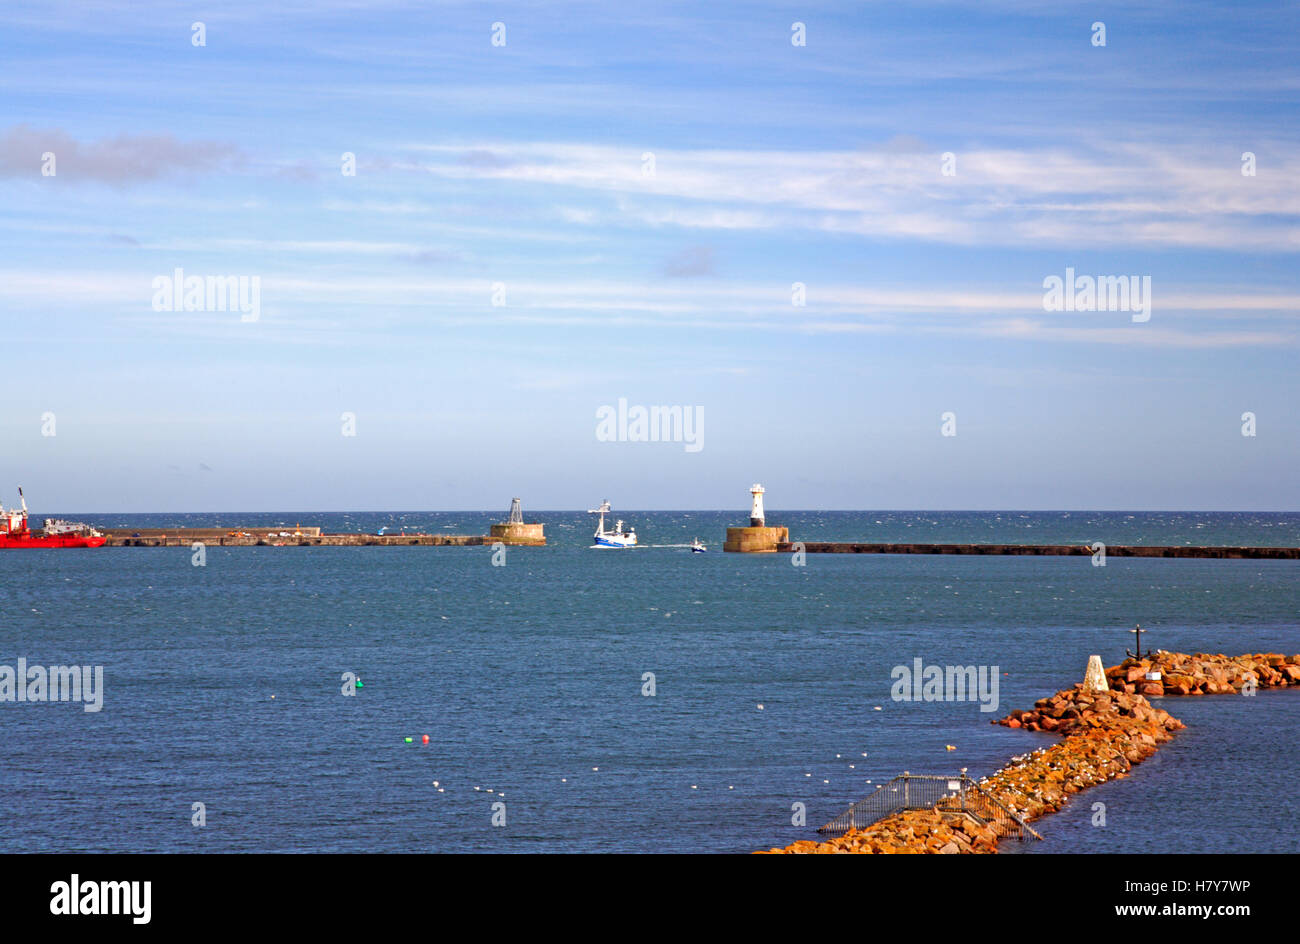 A view of the harbour entrance and breakwaters at Peterhead, Aberdeenshire, Scotland, United Kingdom. - Stock Image